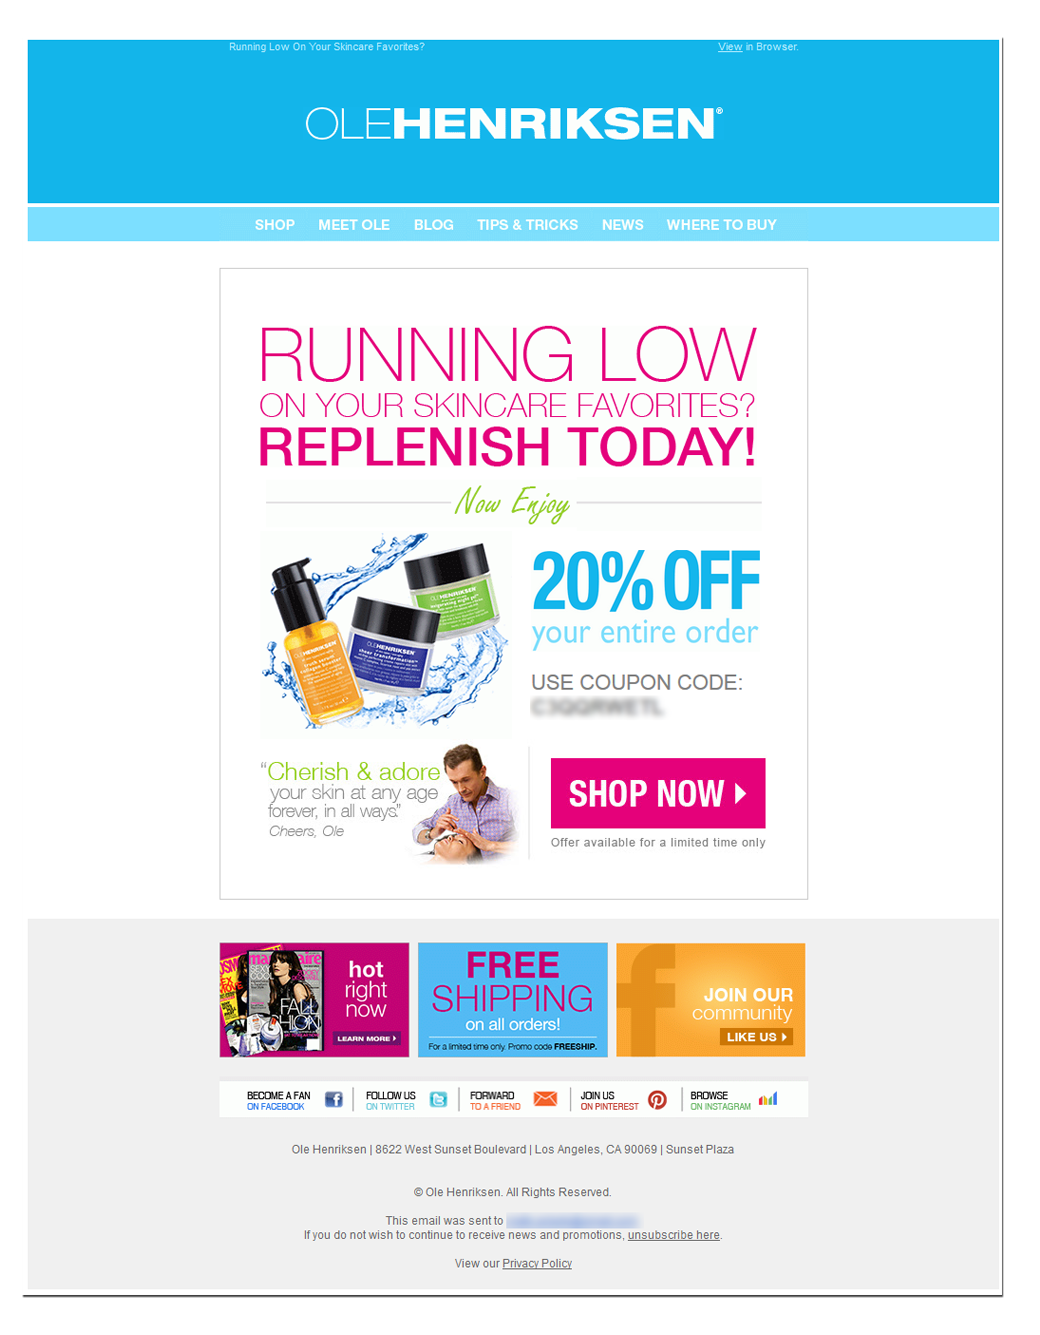 Replenishment offer email by Ole Henriksen